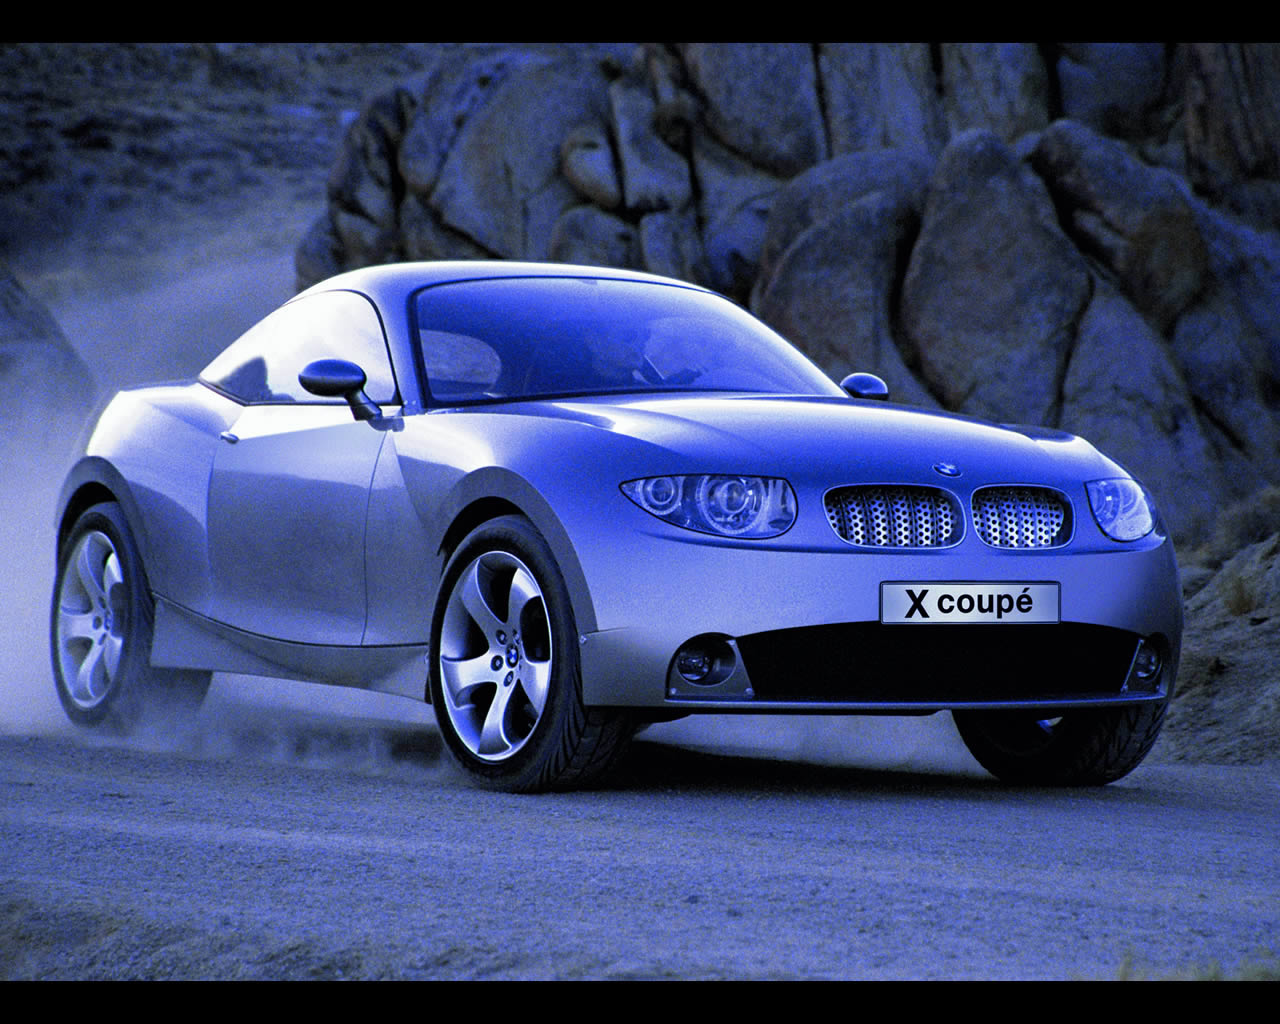 2001 BMW X Coupe #9